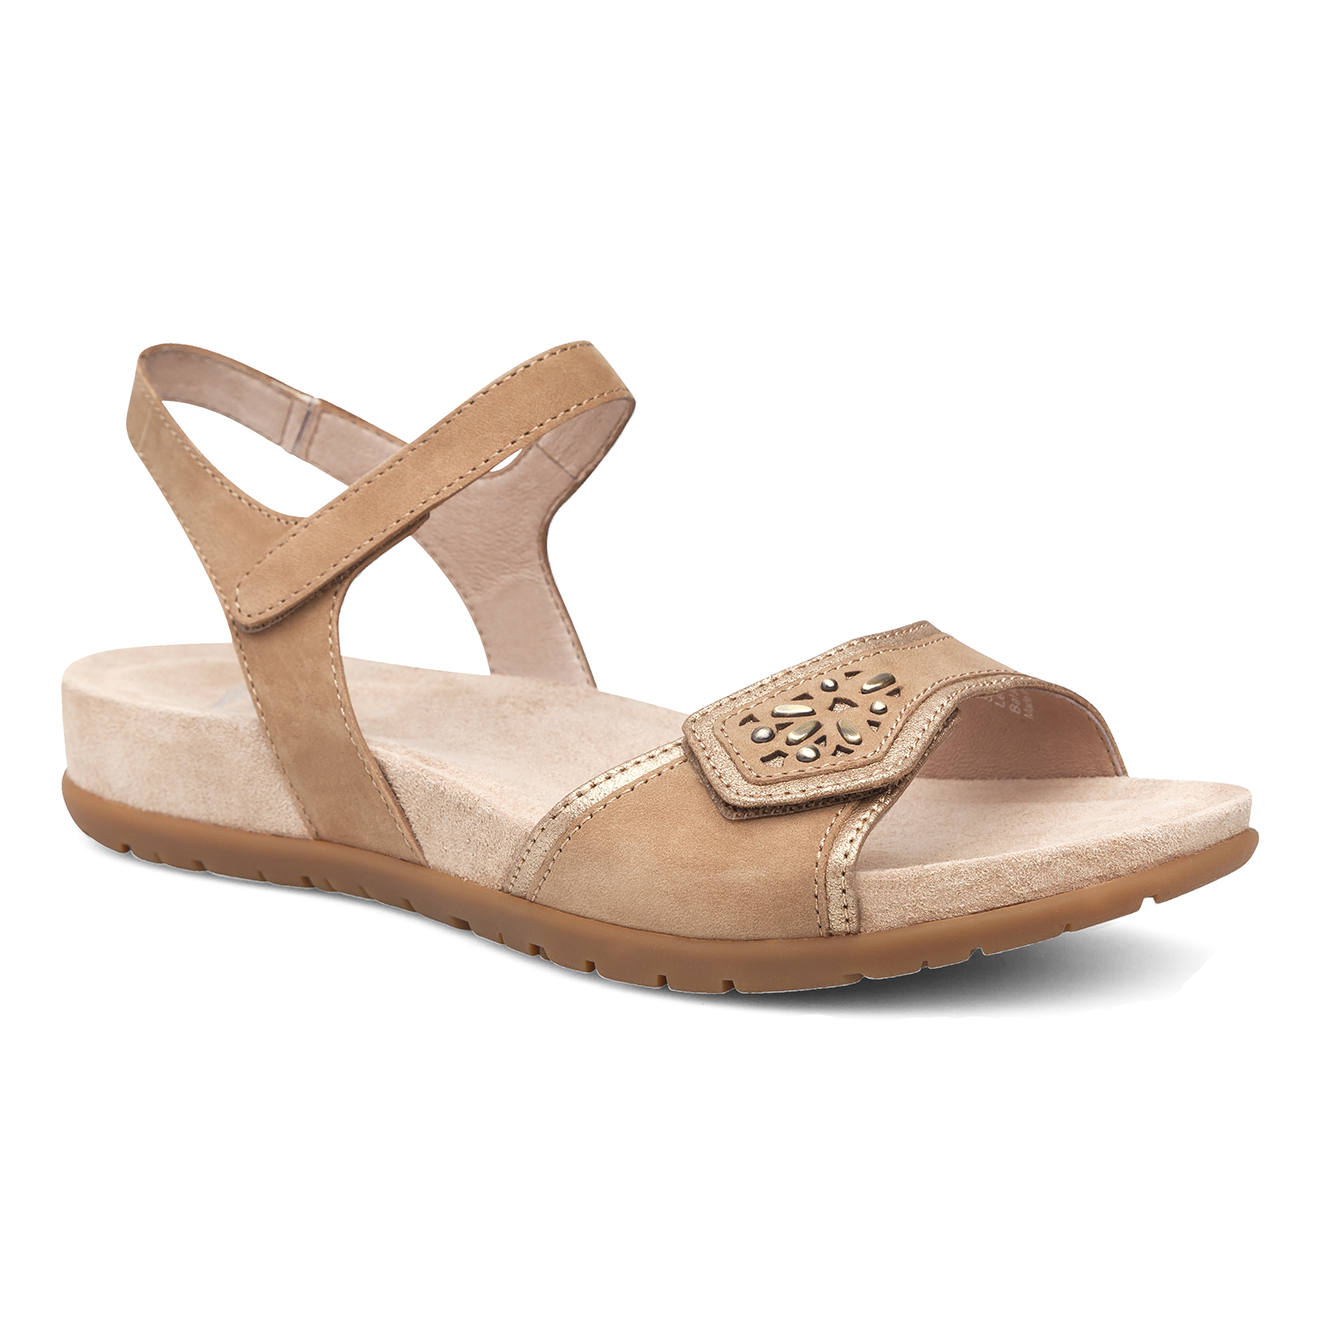 e4b3befbc95 Dansko Womens Sandals Blythe Sand Milled Nubuck Leather Size EU 39 ...